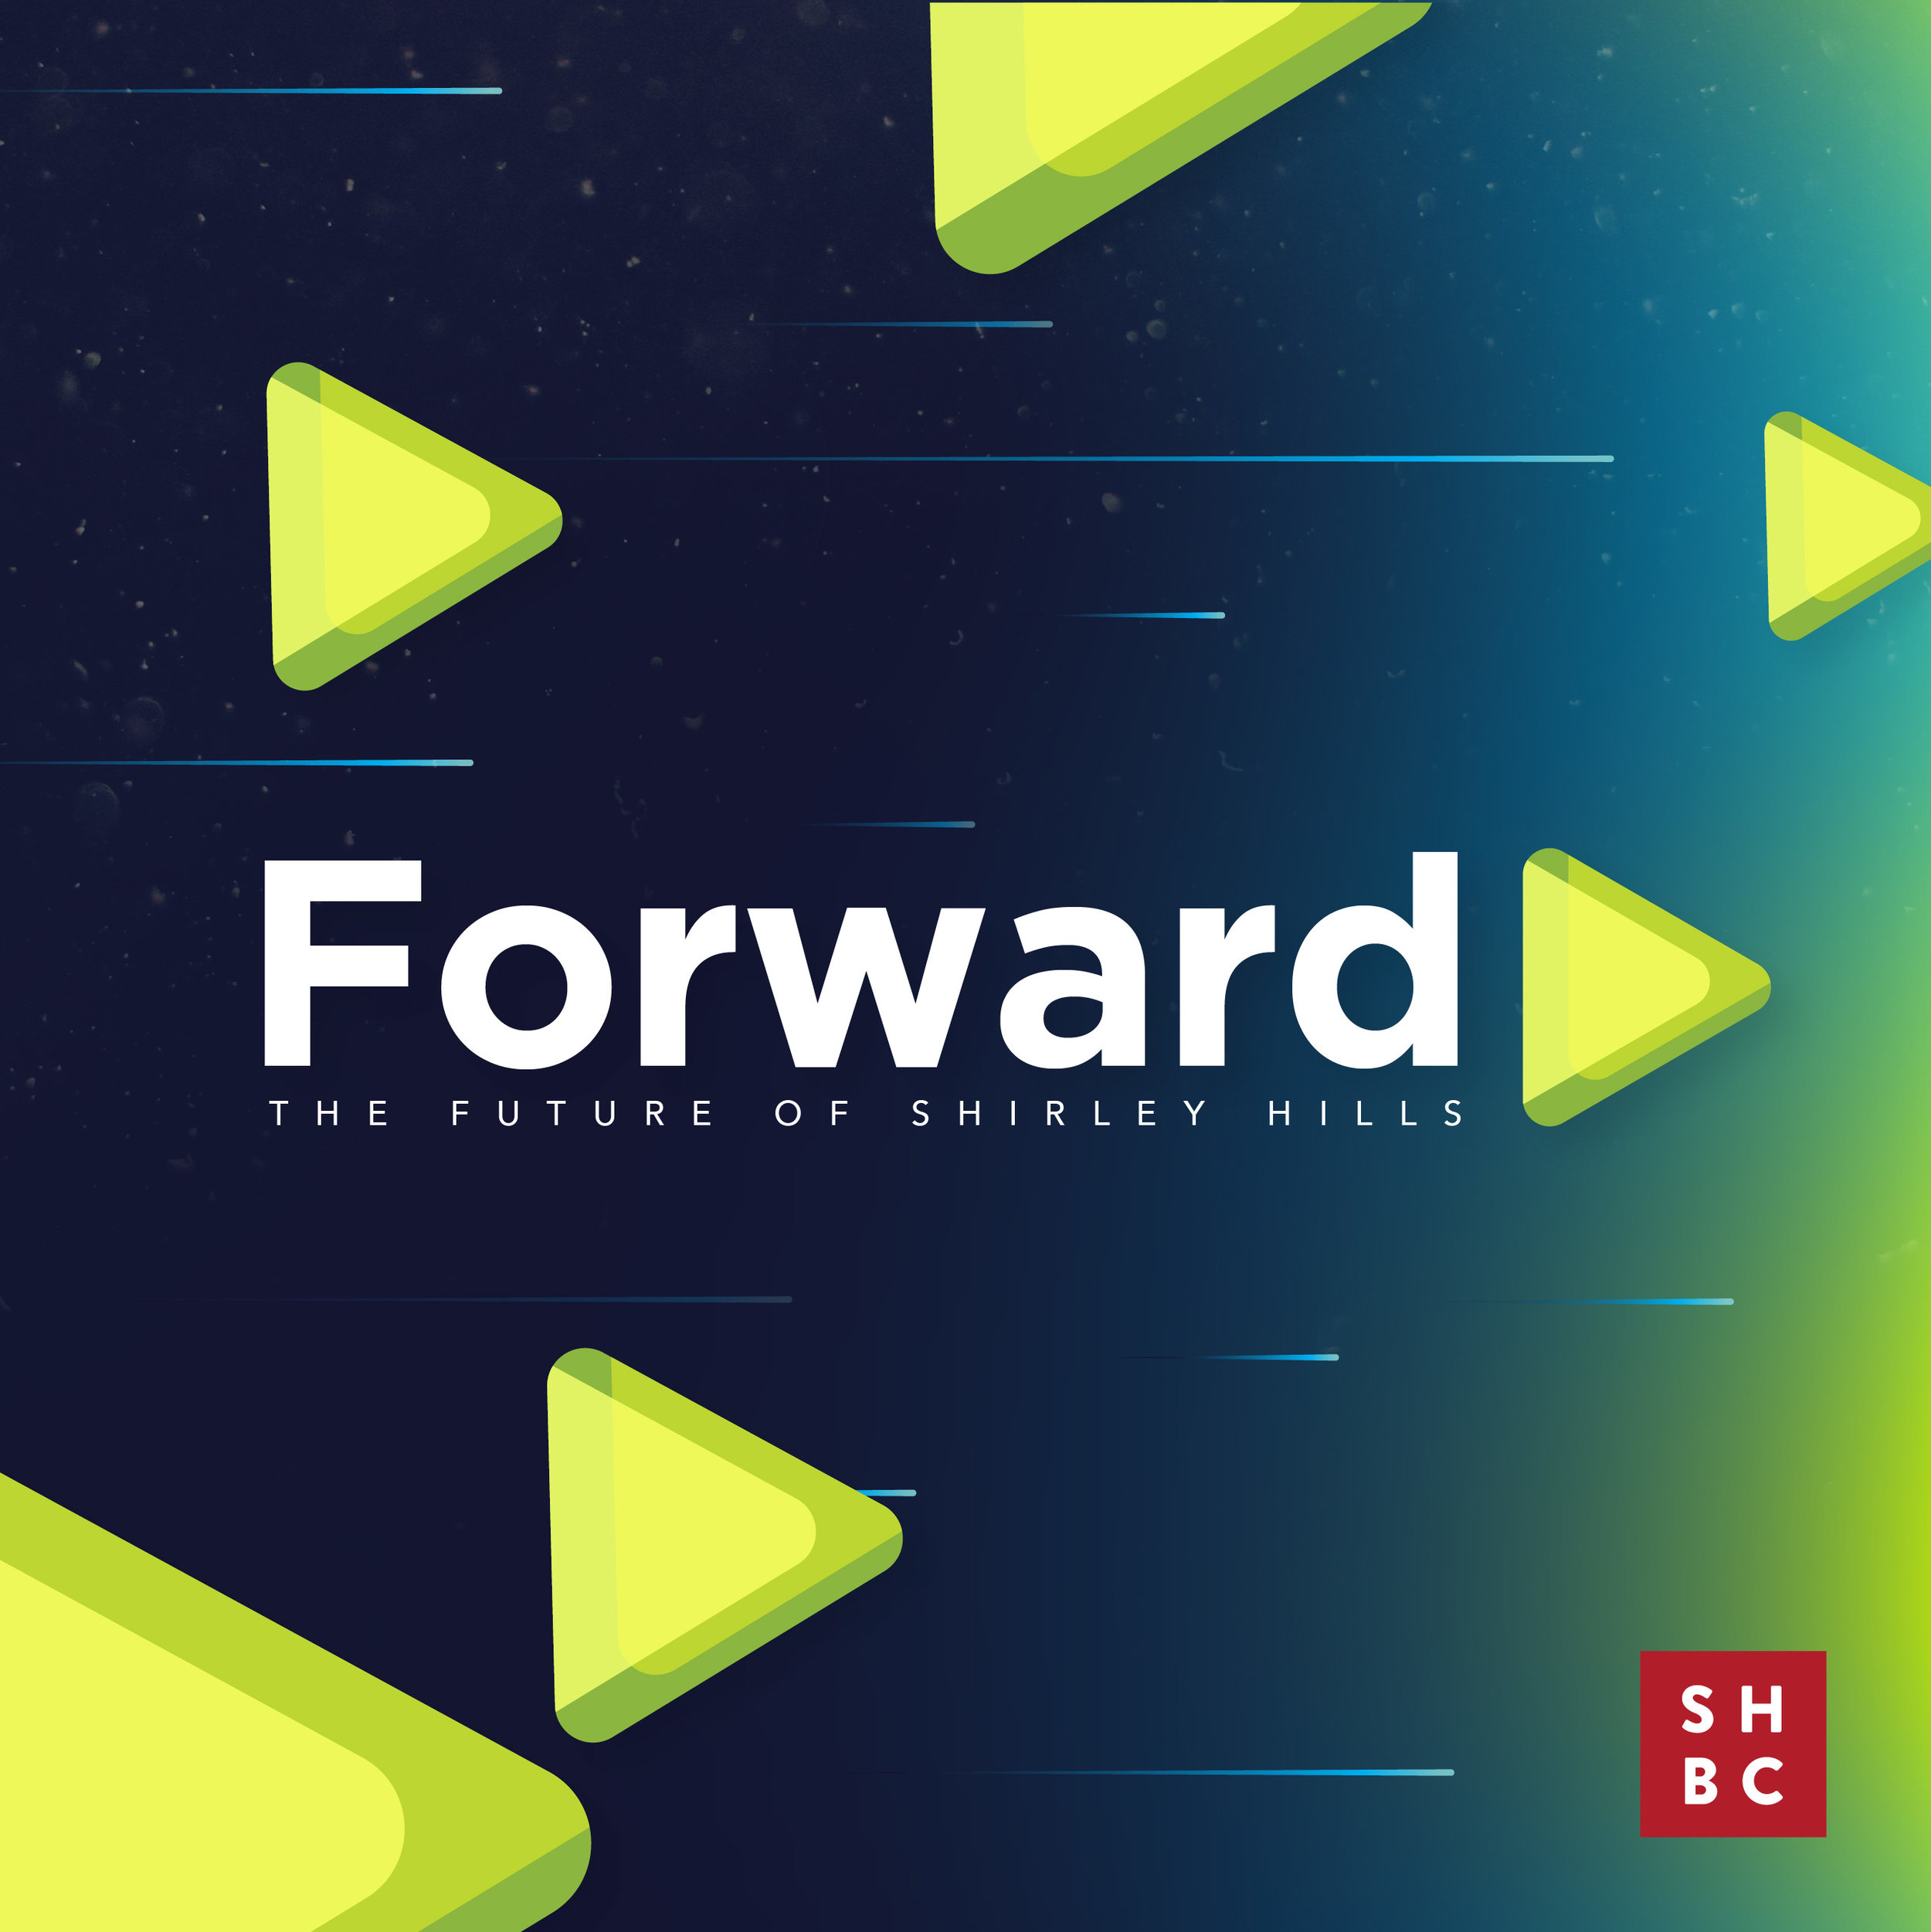 Forward_New-05.jpg